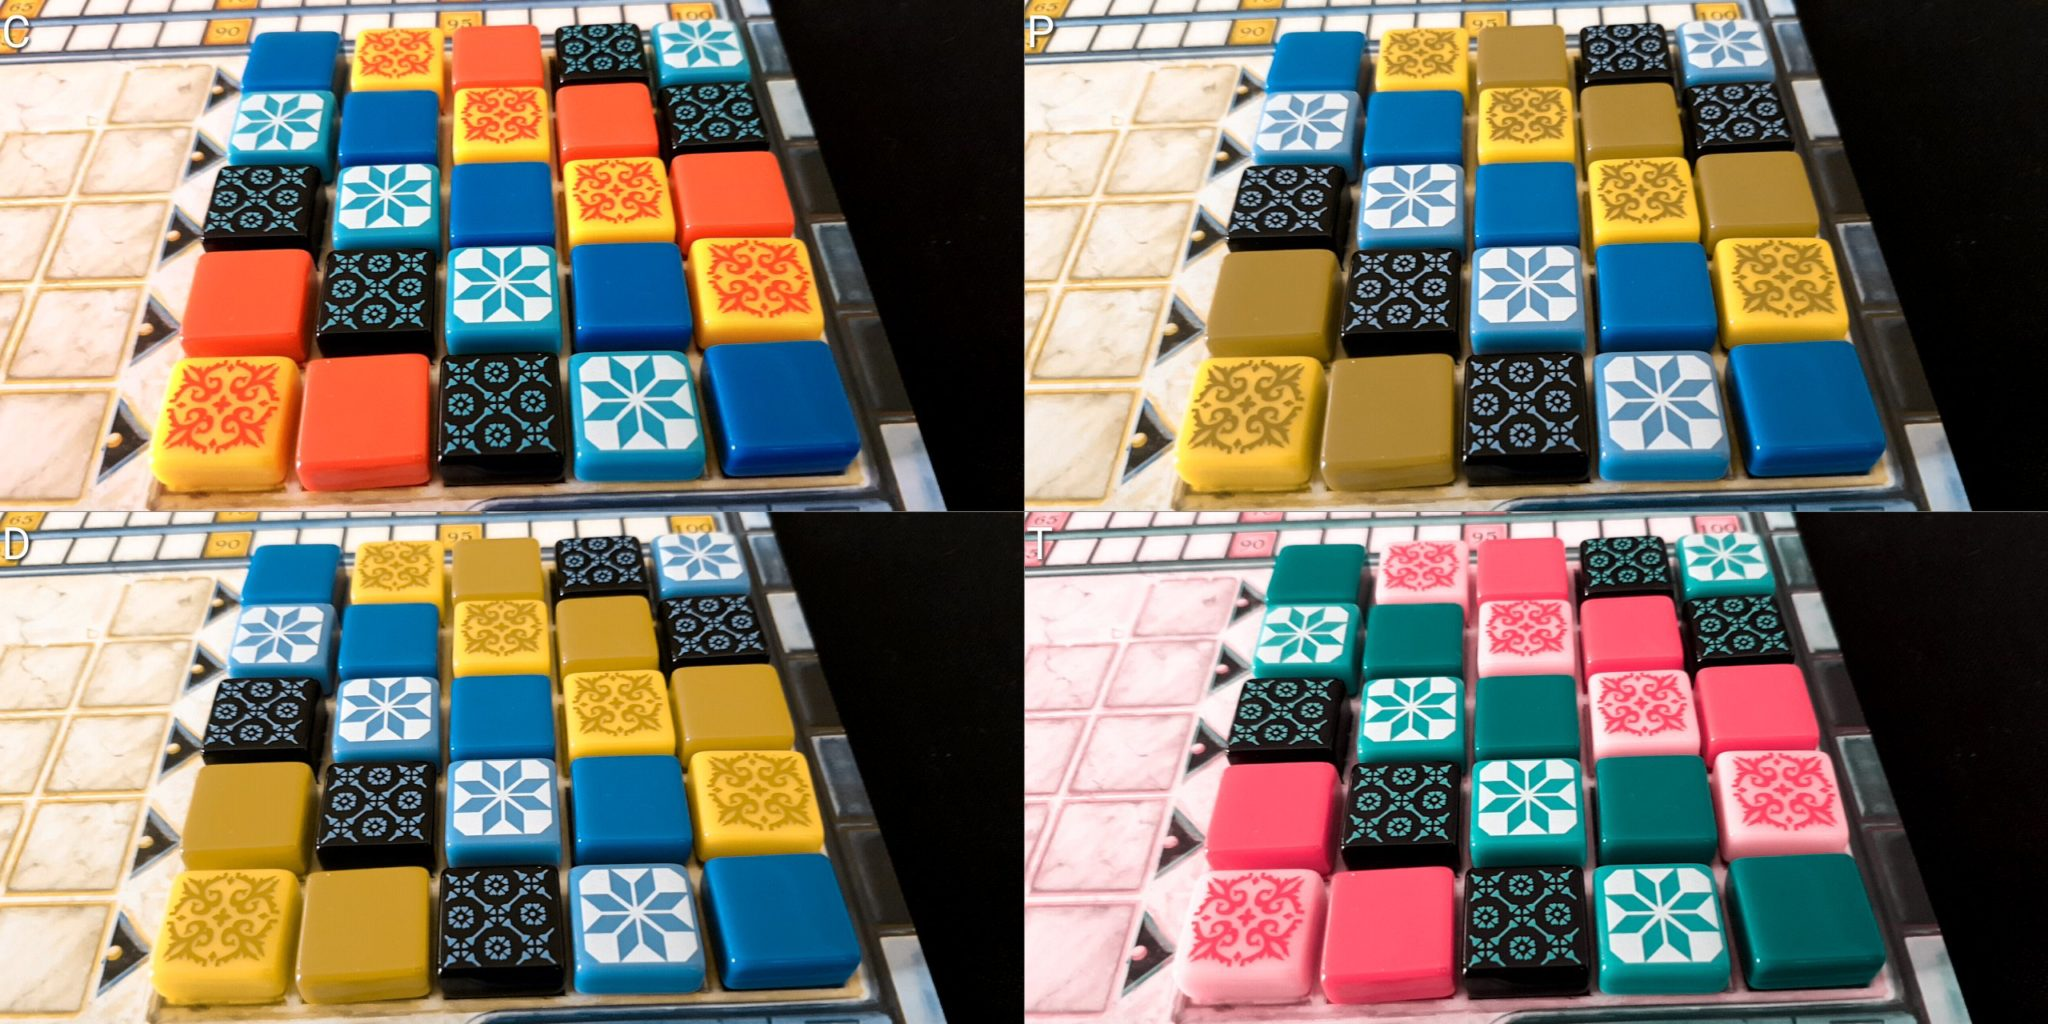 Colour blindness tiles